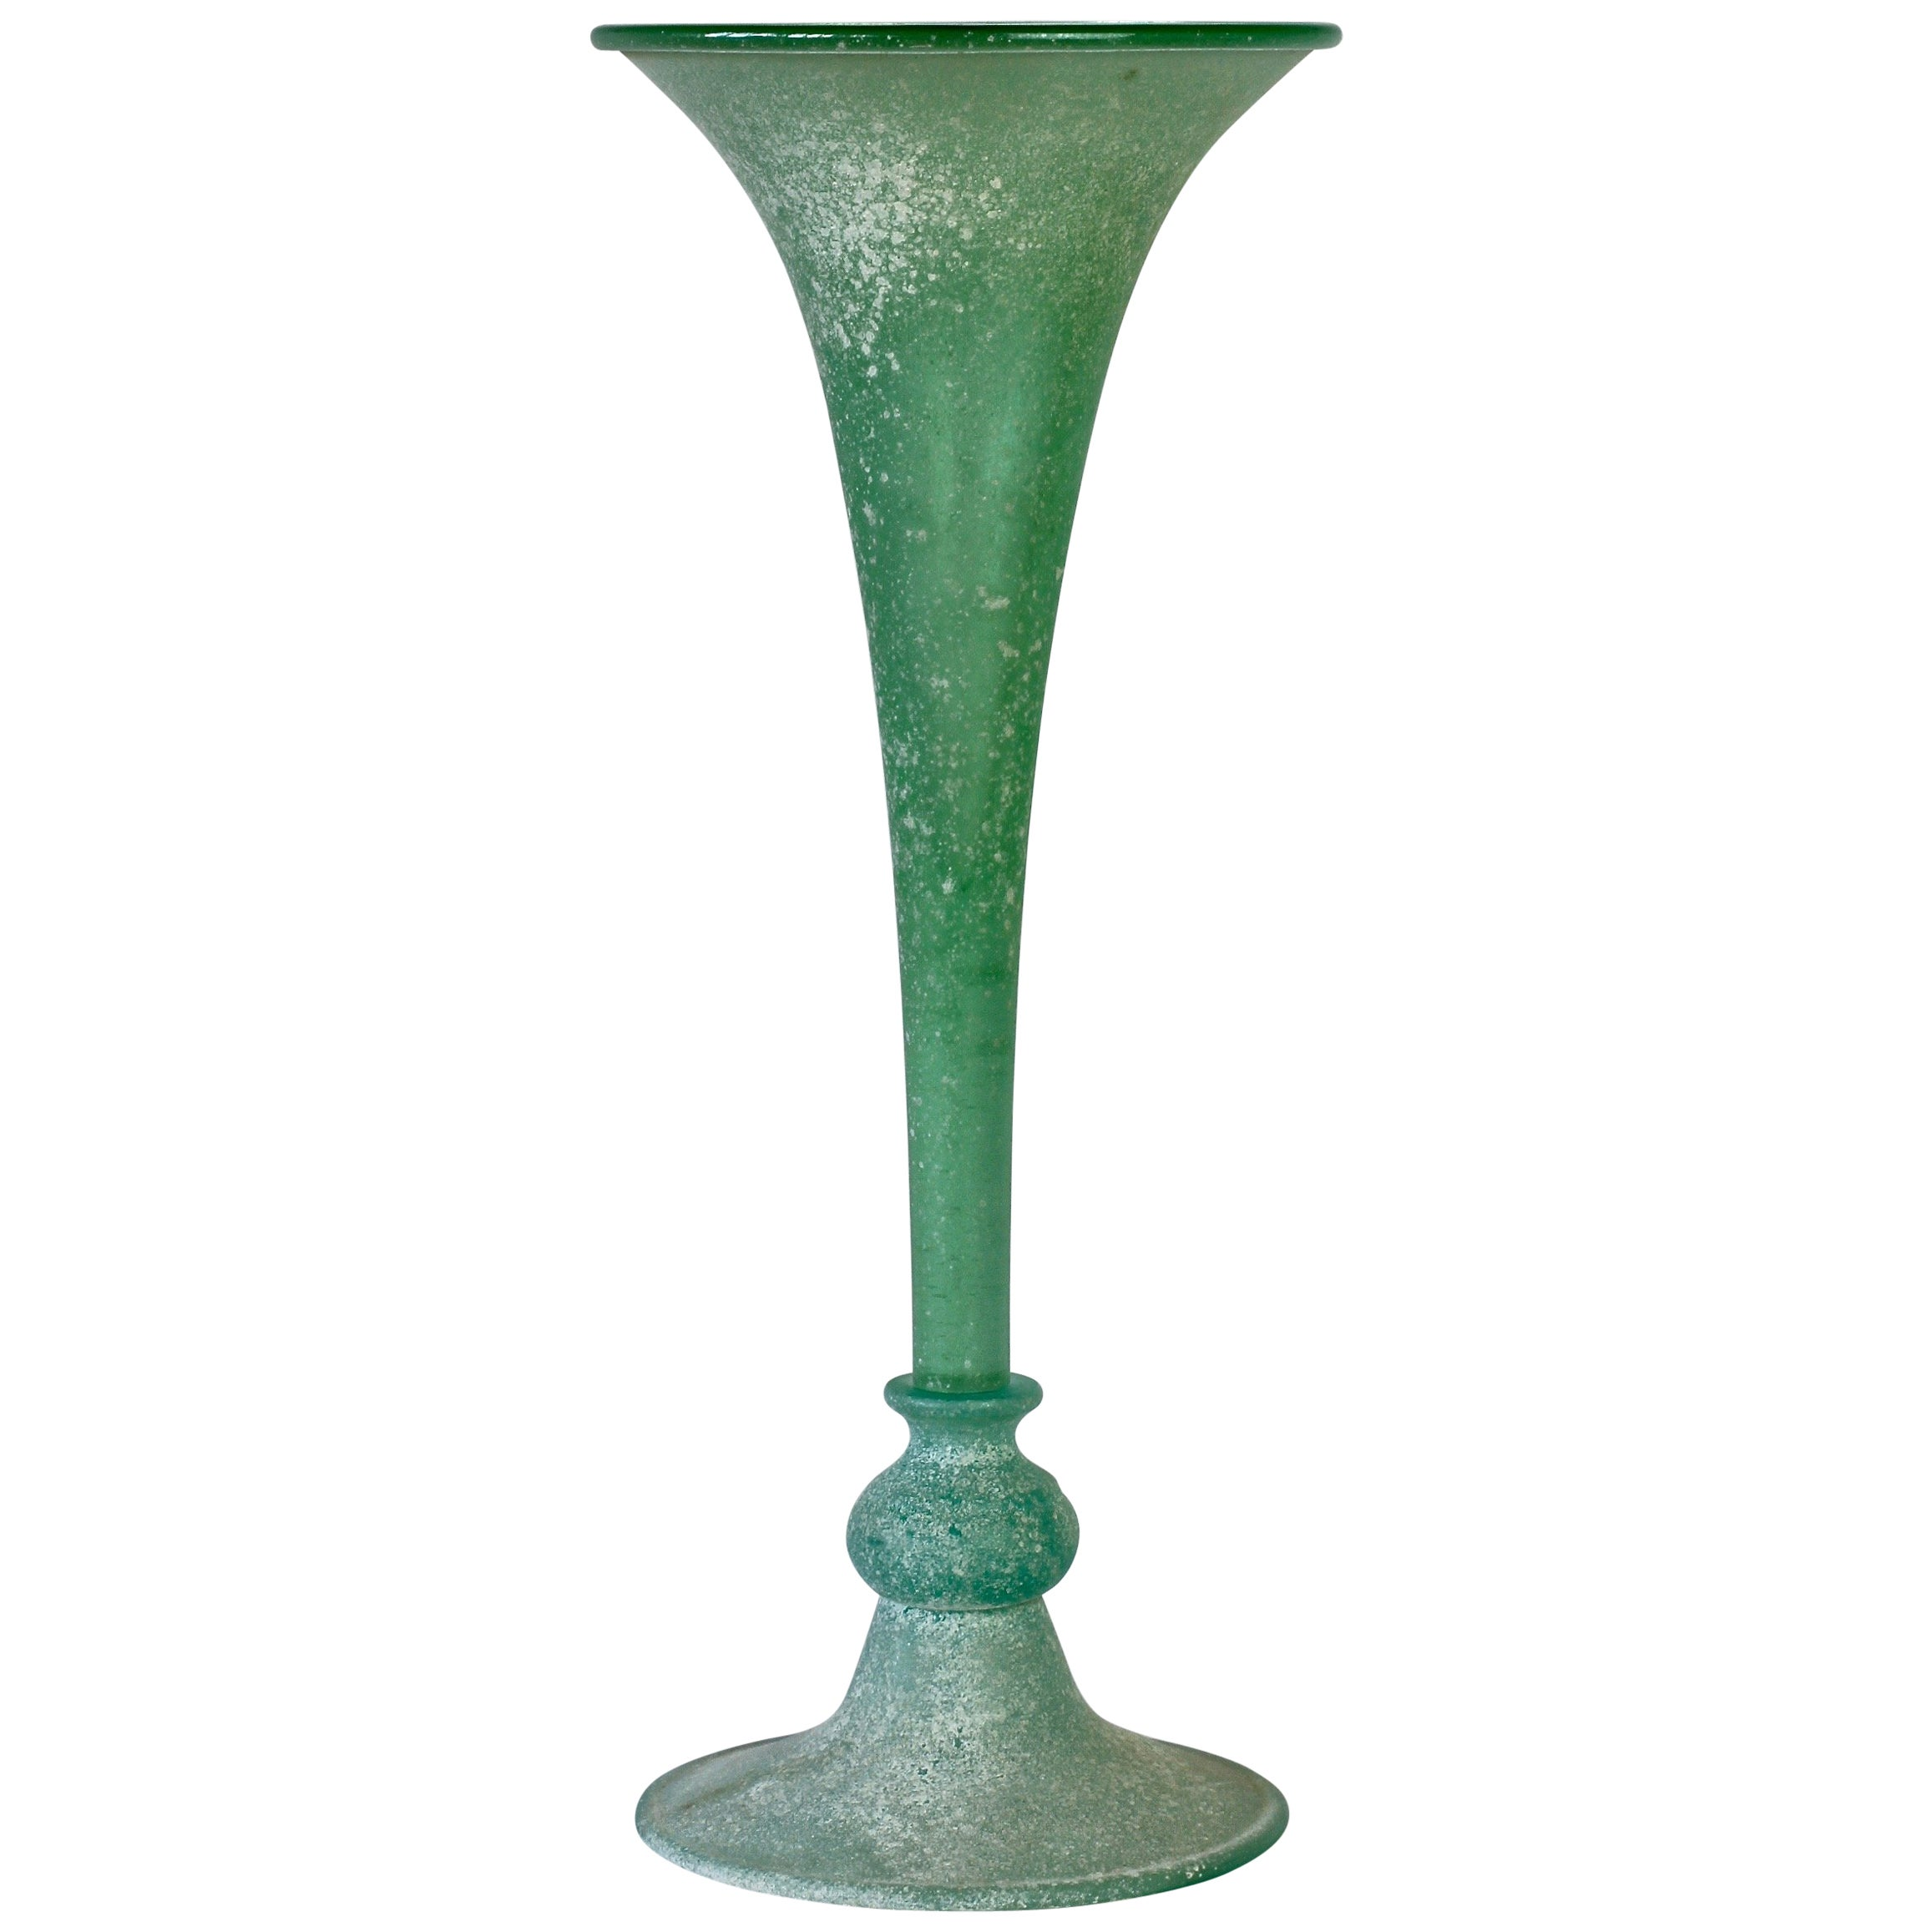 Tall Green 'A Scavo' Murano Glass Fluted Vase Attributed to Seguso Vetri d'Arte